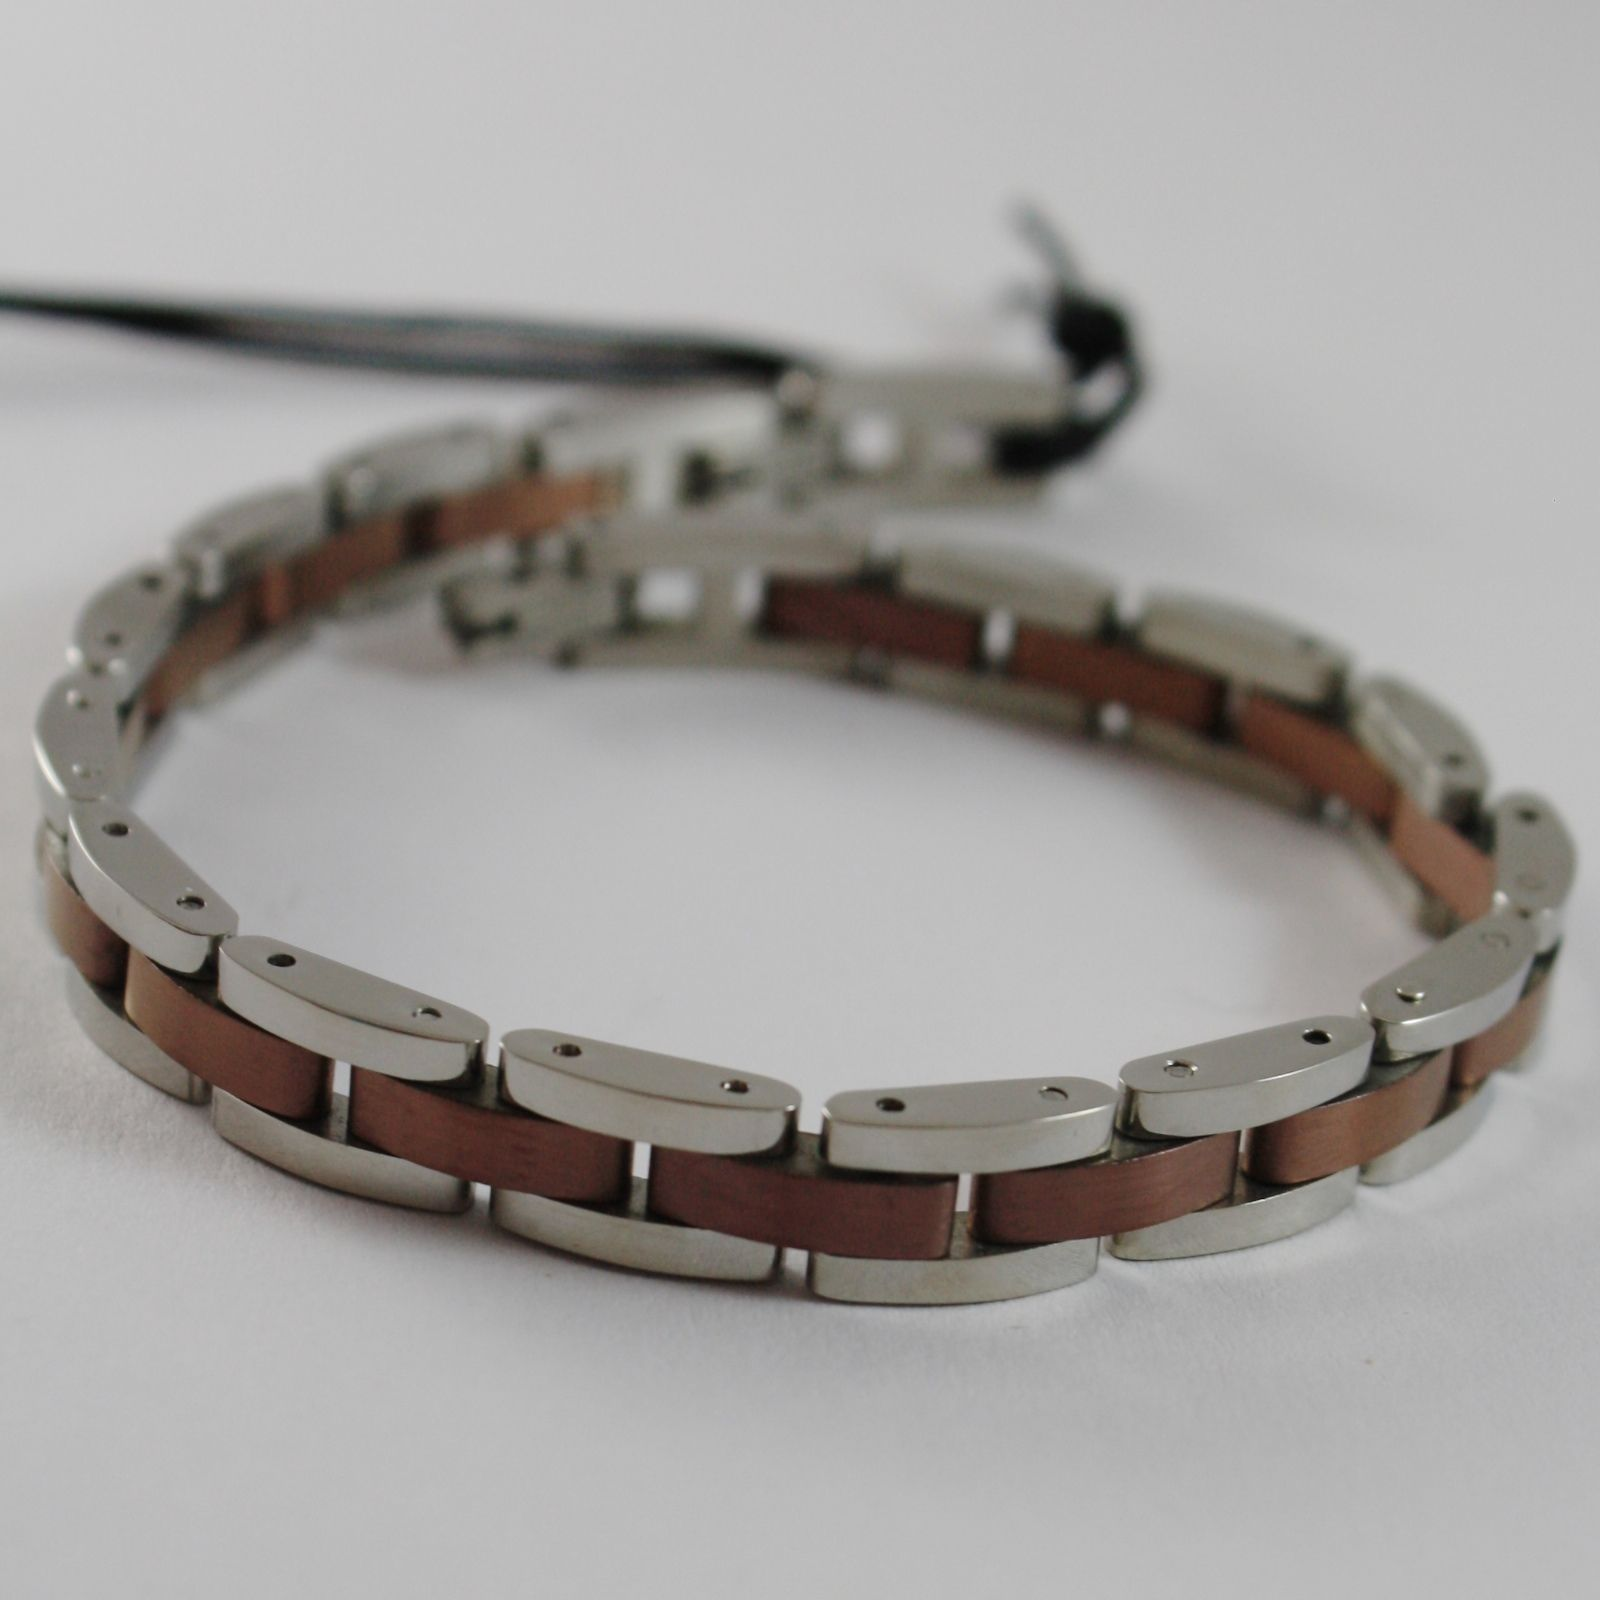 STAINLESS SATIN BROWN AND WHITE STEEL FLAT MESH BRACELET 4US BY CESARE PACIOTTI